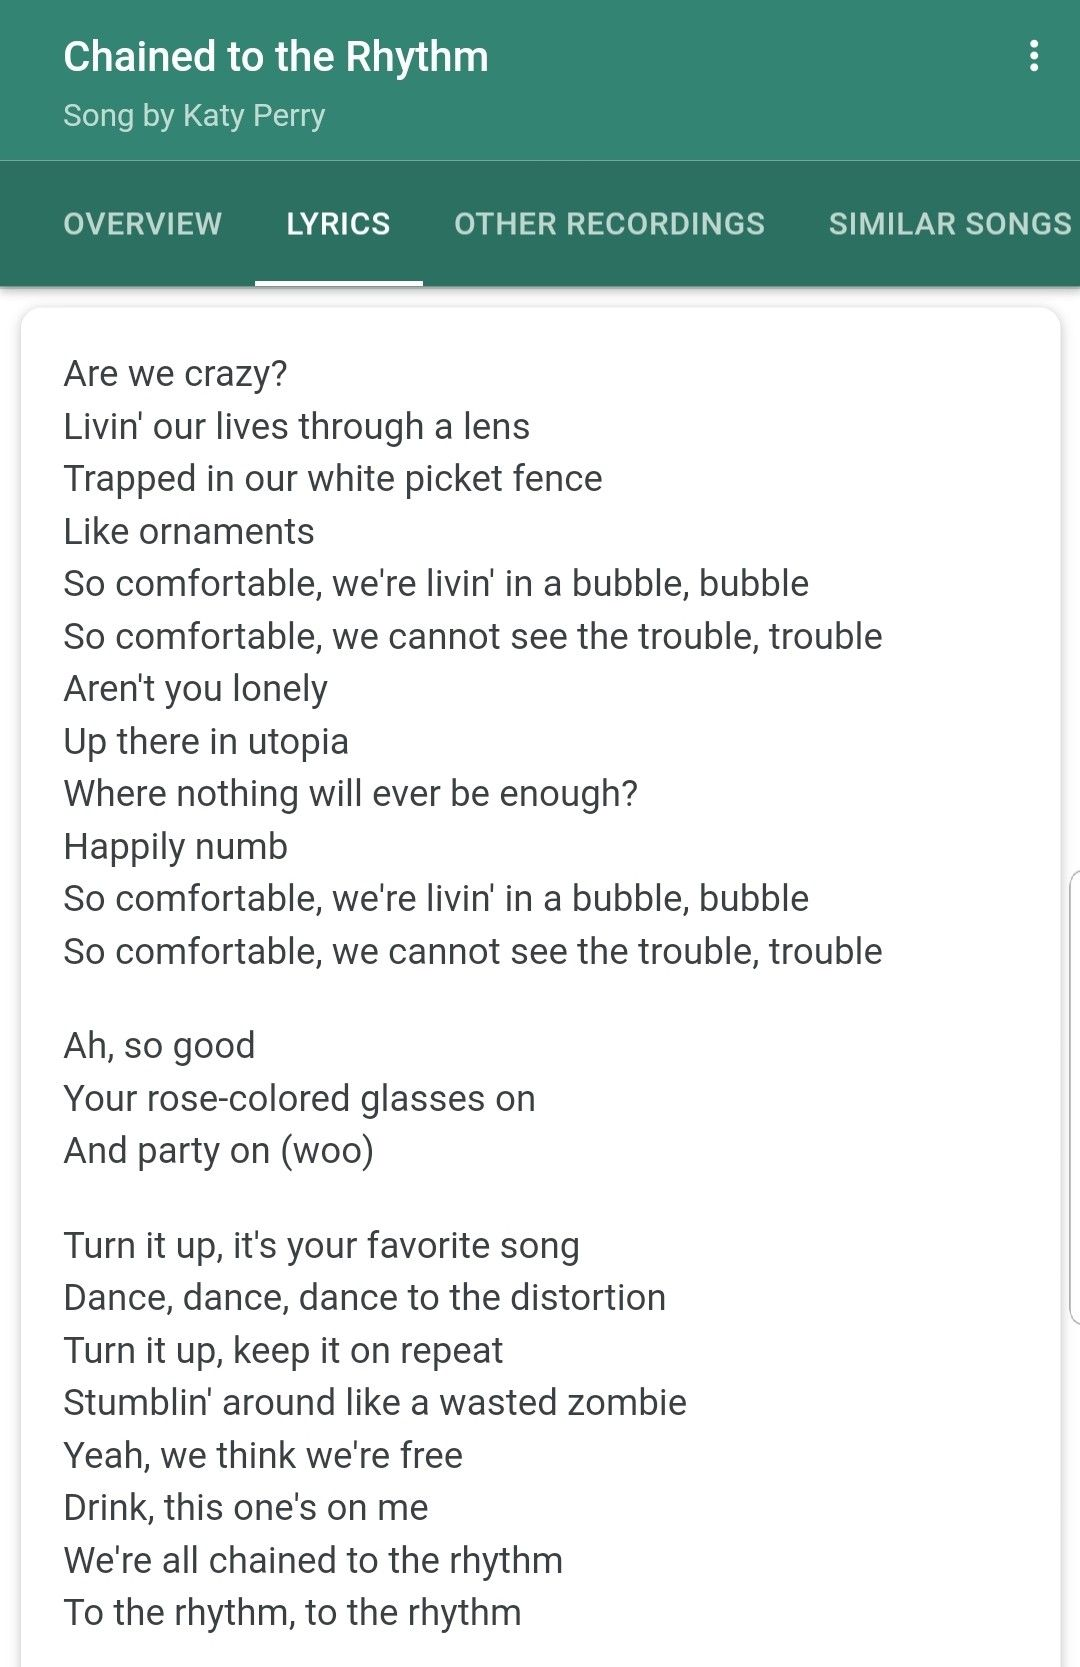 Pin By Brunella On Makeup Musing Arrow For The Soul White Picket Fence Bubbles Lyrics